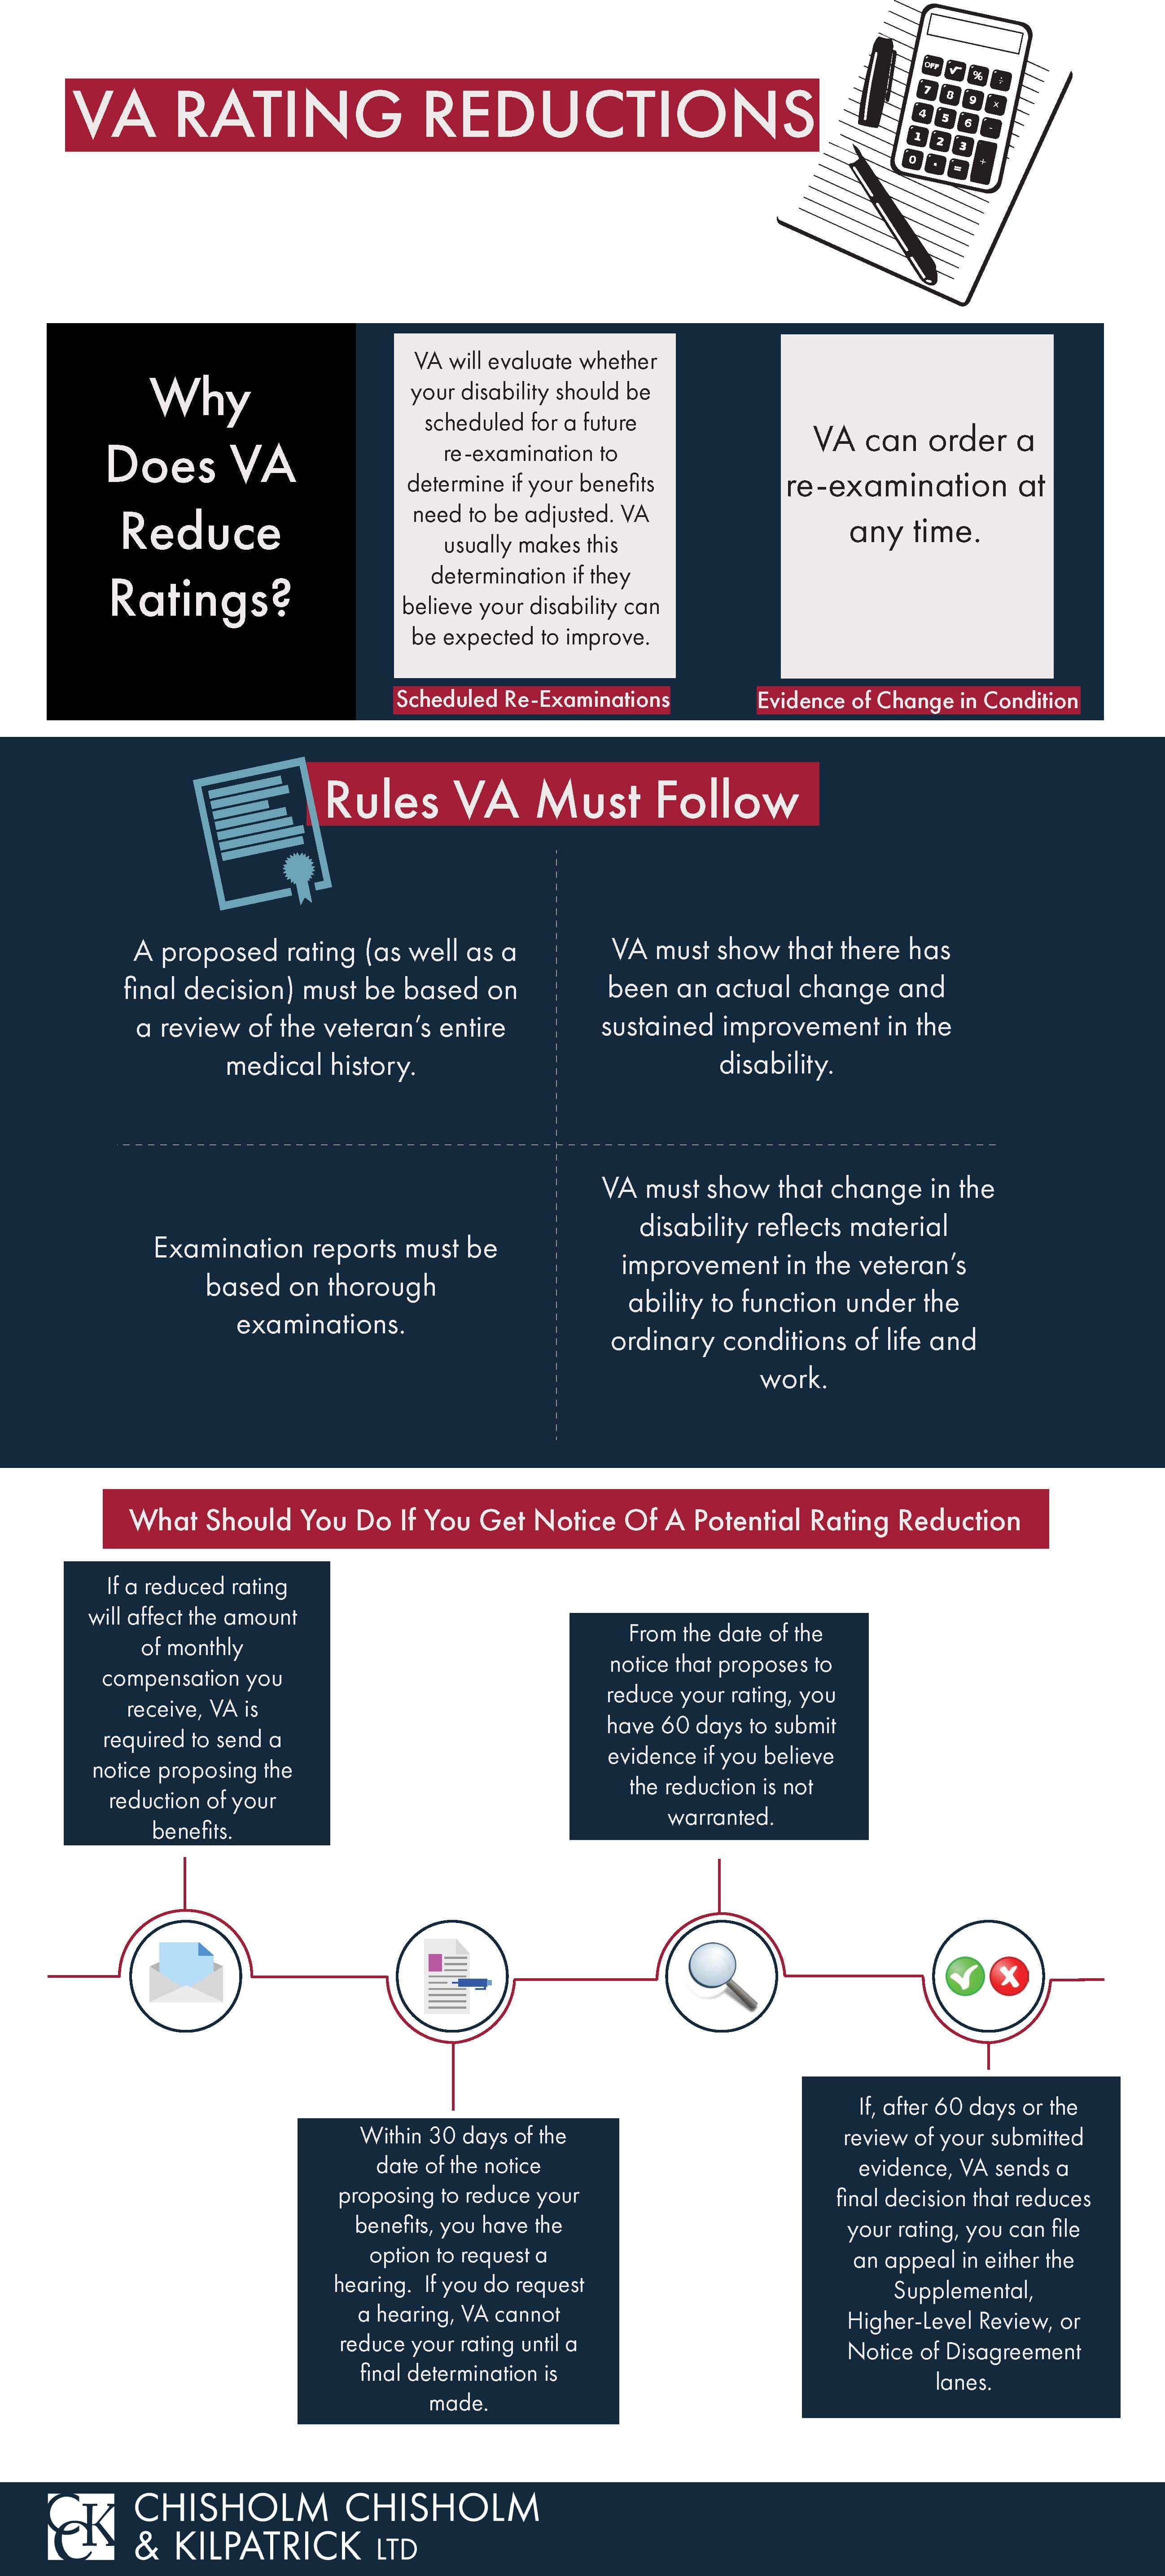 VA Rating Reductions Infographic